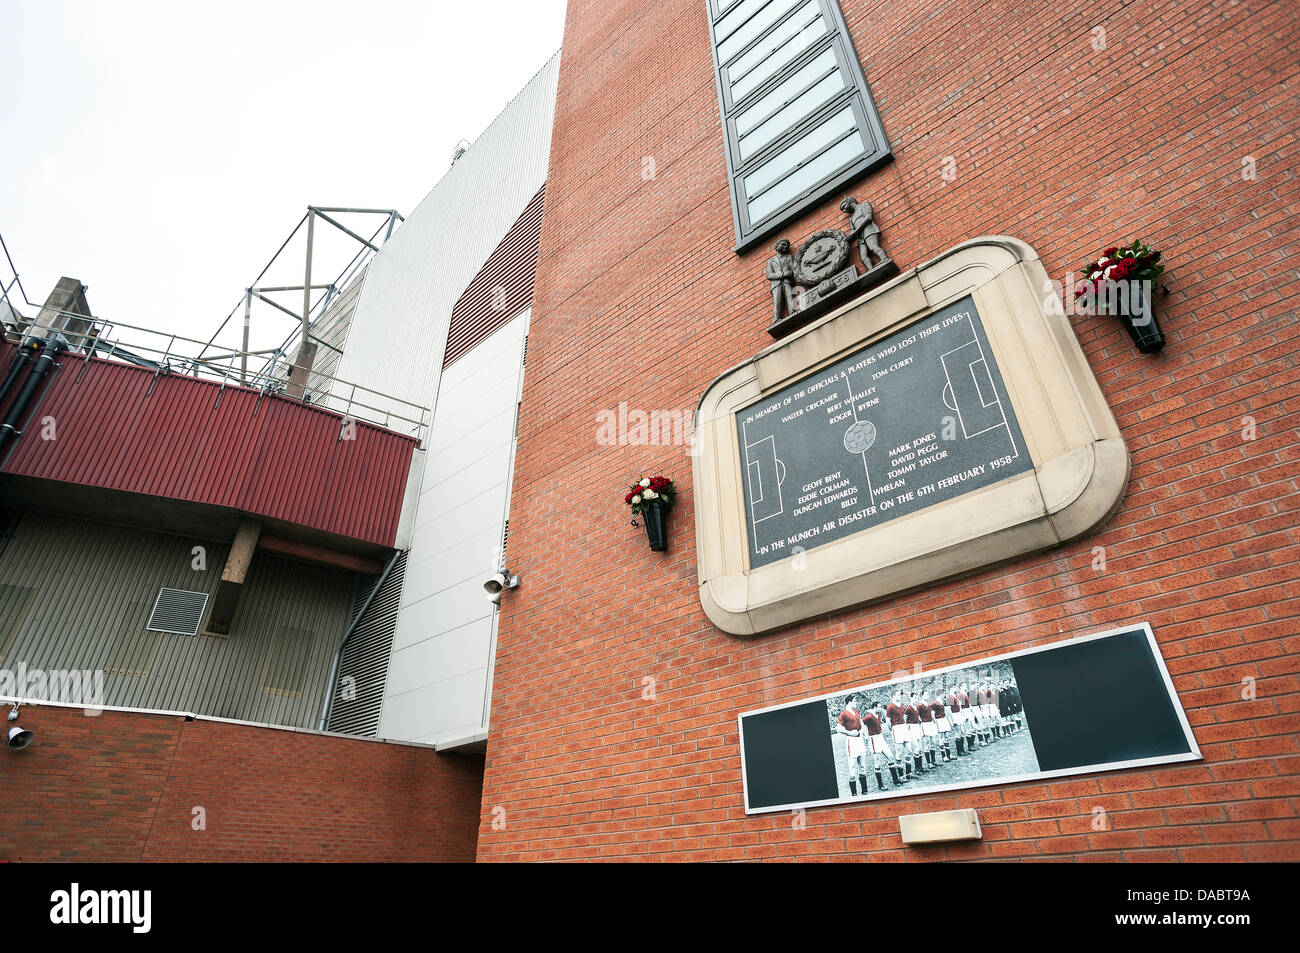 Munich Air Disaster Memorial, Old Trafford, Manchester - Stock Image